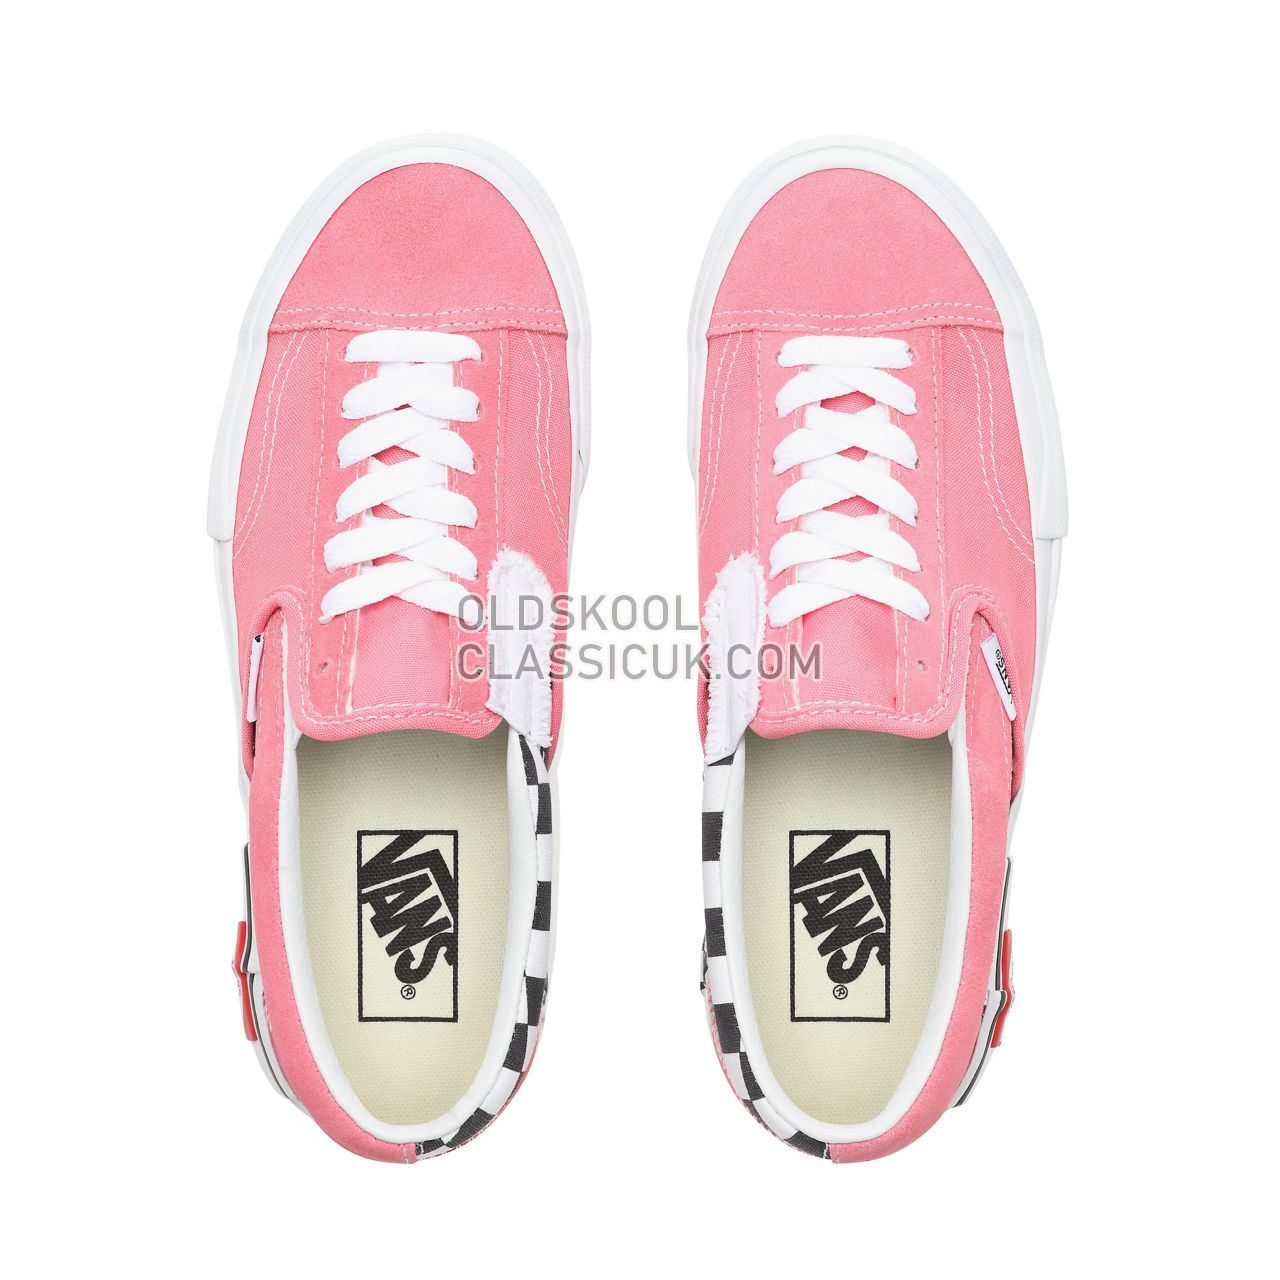 Vans Checkerboard Slip-On Cap Sneakers Womens (Checkerboard) Strawberry Pink/True White VN0A3WM5VOX Shoes